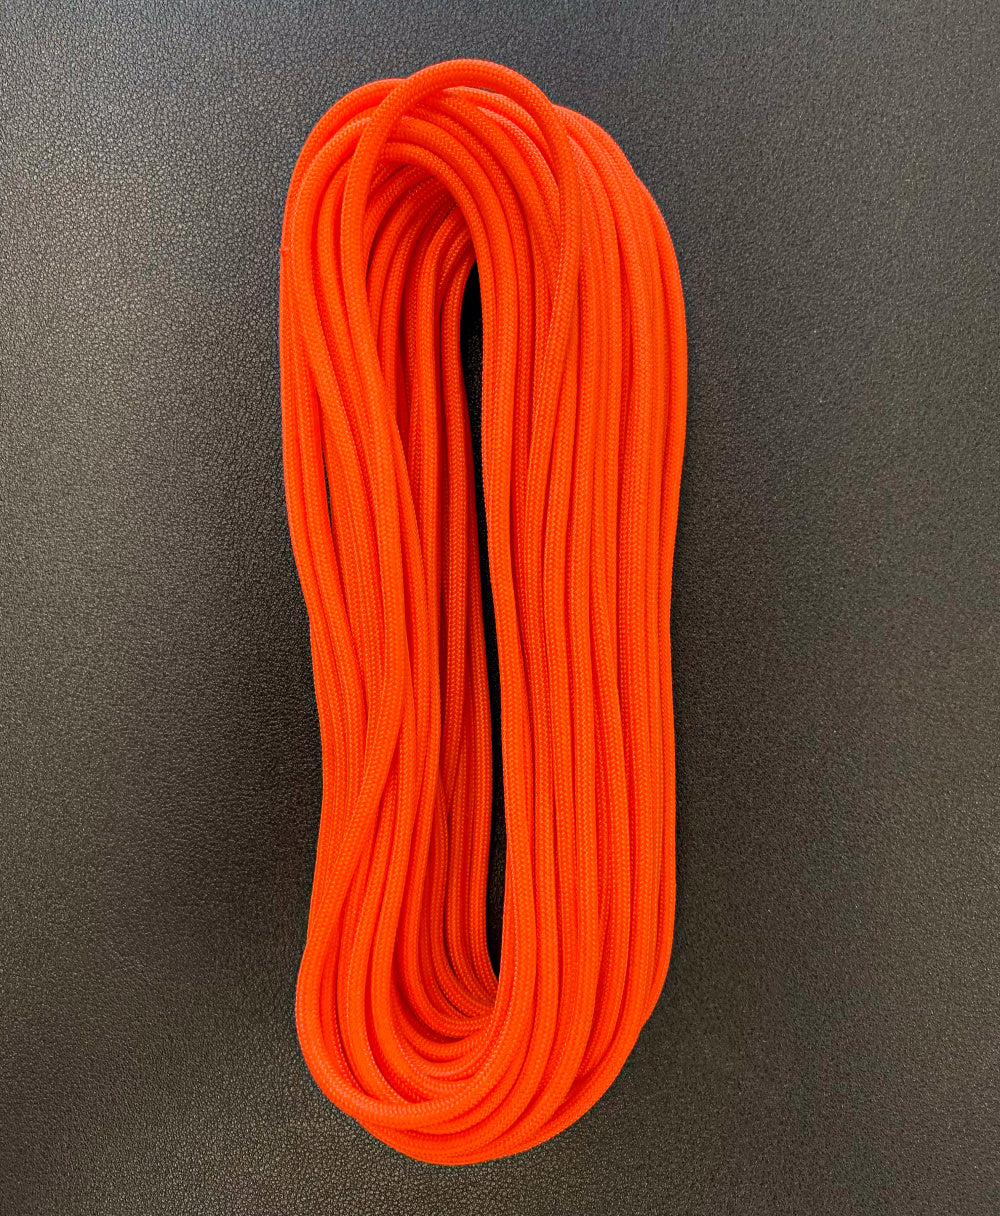 550 Paracord - 100 Ft - High Quality 7 Strand  by Hunting Gear Outfitters